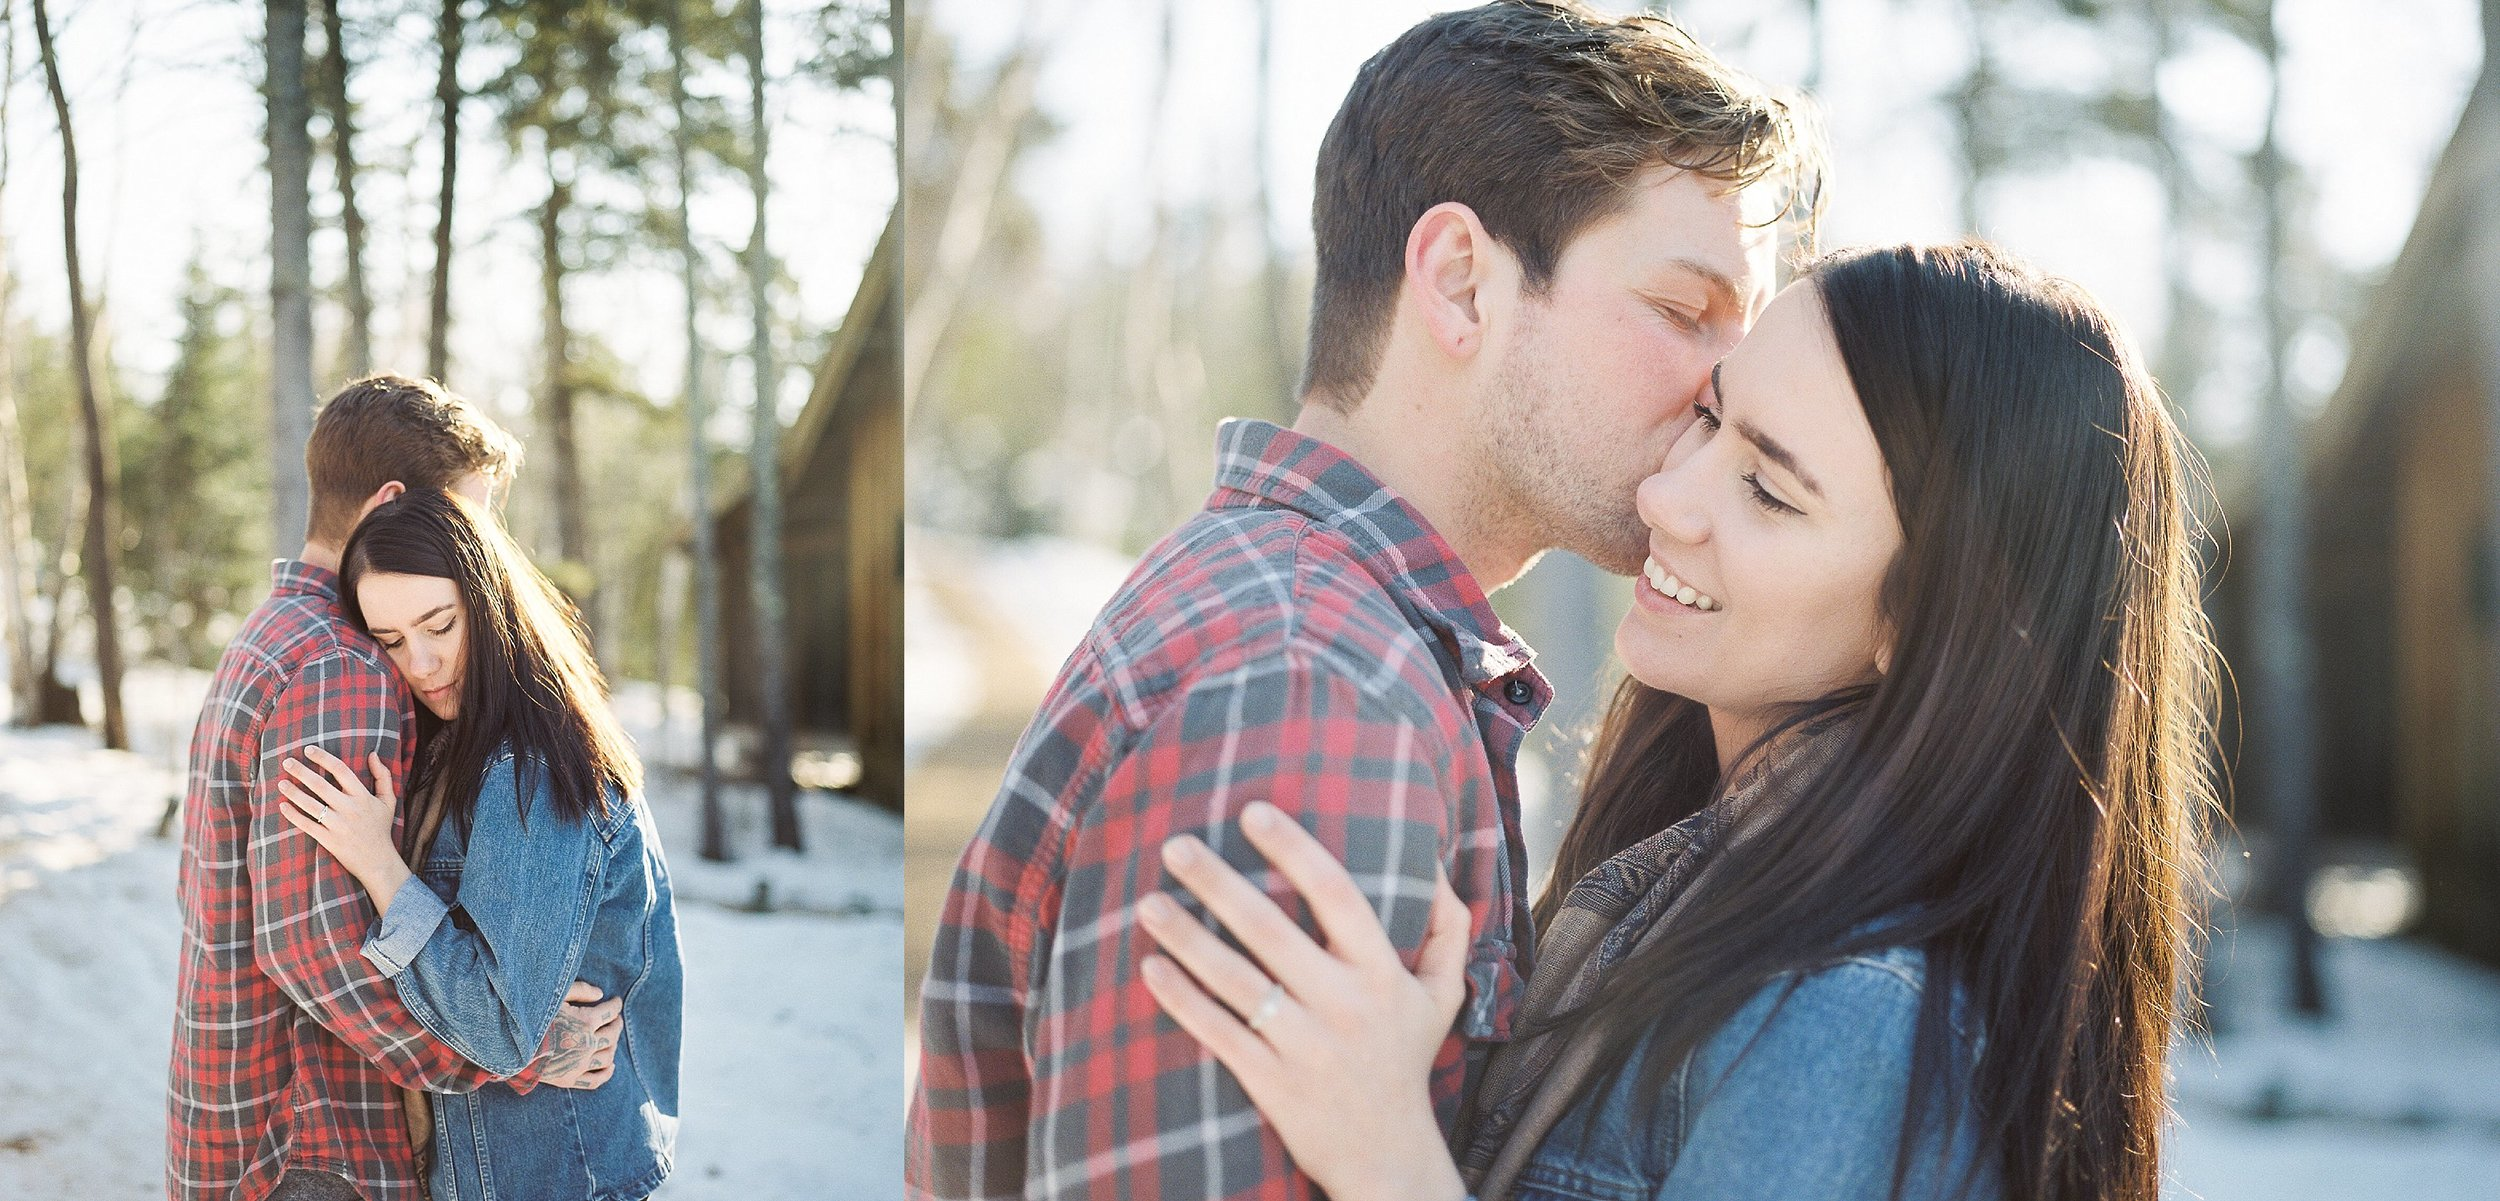 Winnipeg Wedding photographer Keila Marie Photography | Film photographer engagement photos